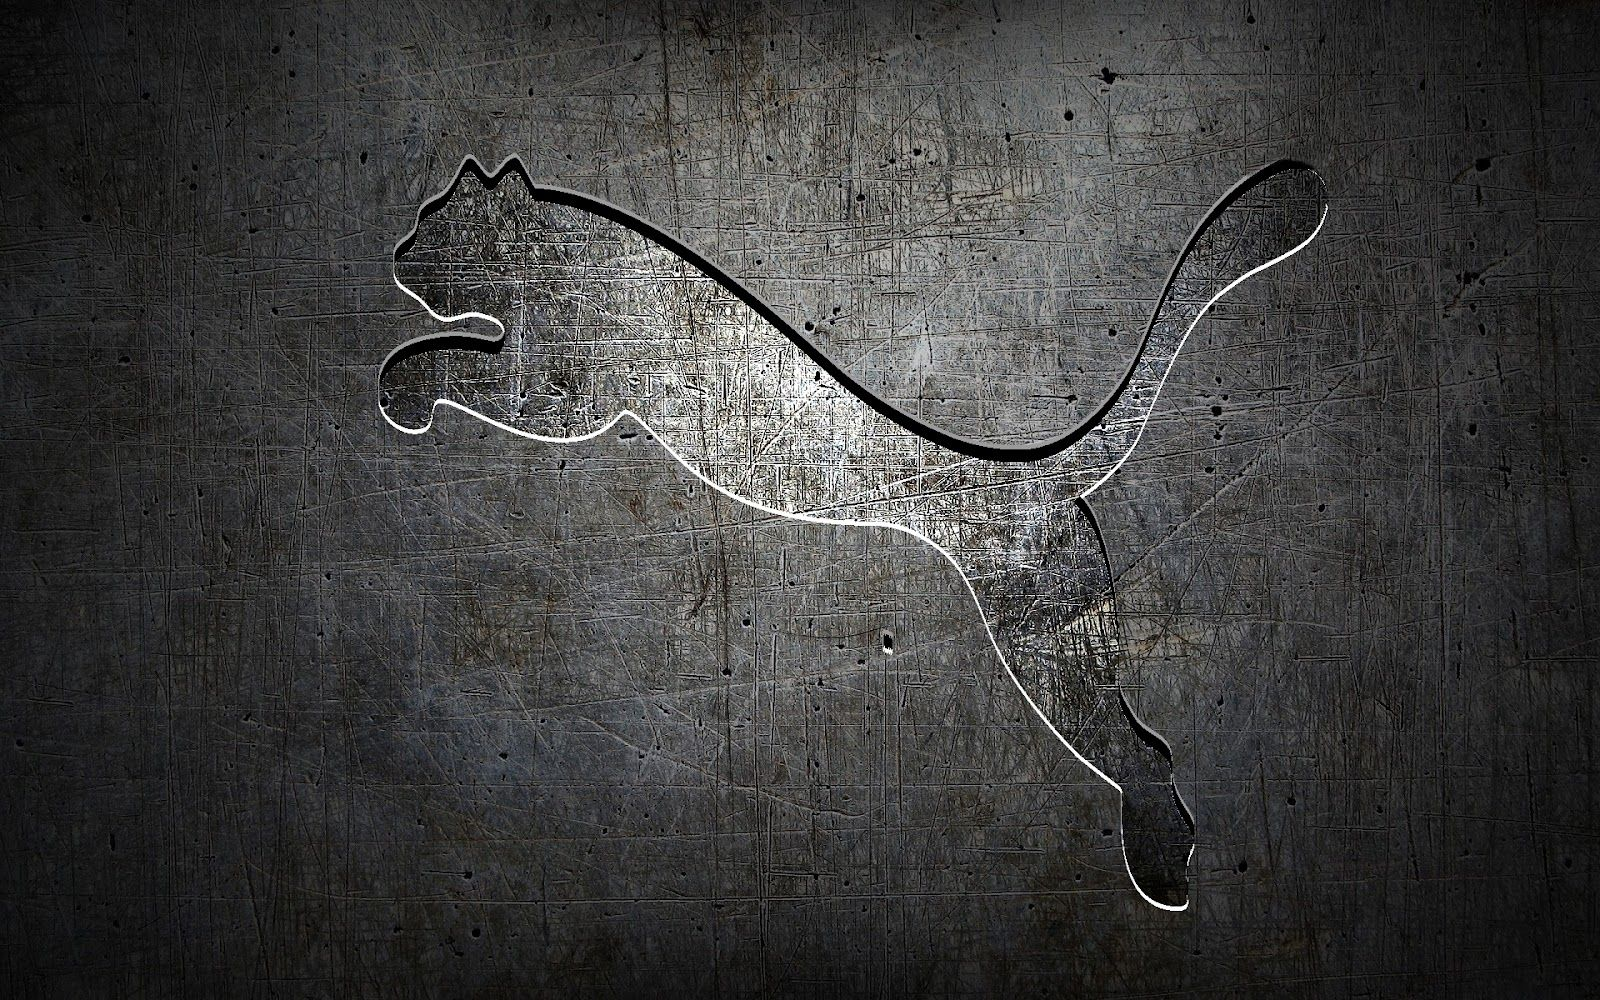 Grey Puma Logo Top Best Hd Wallpaper Image Picture Free